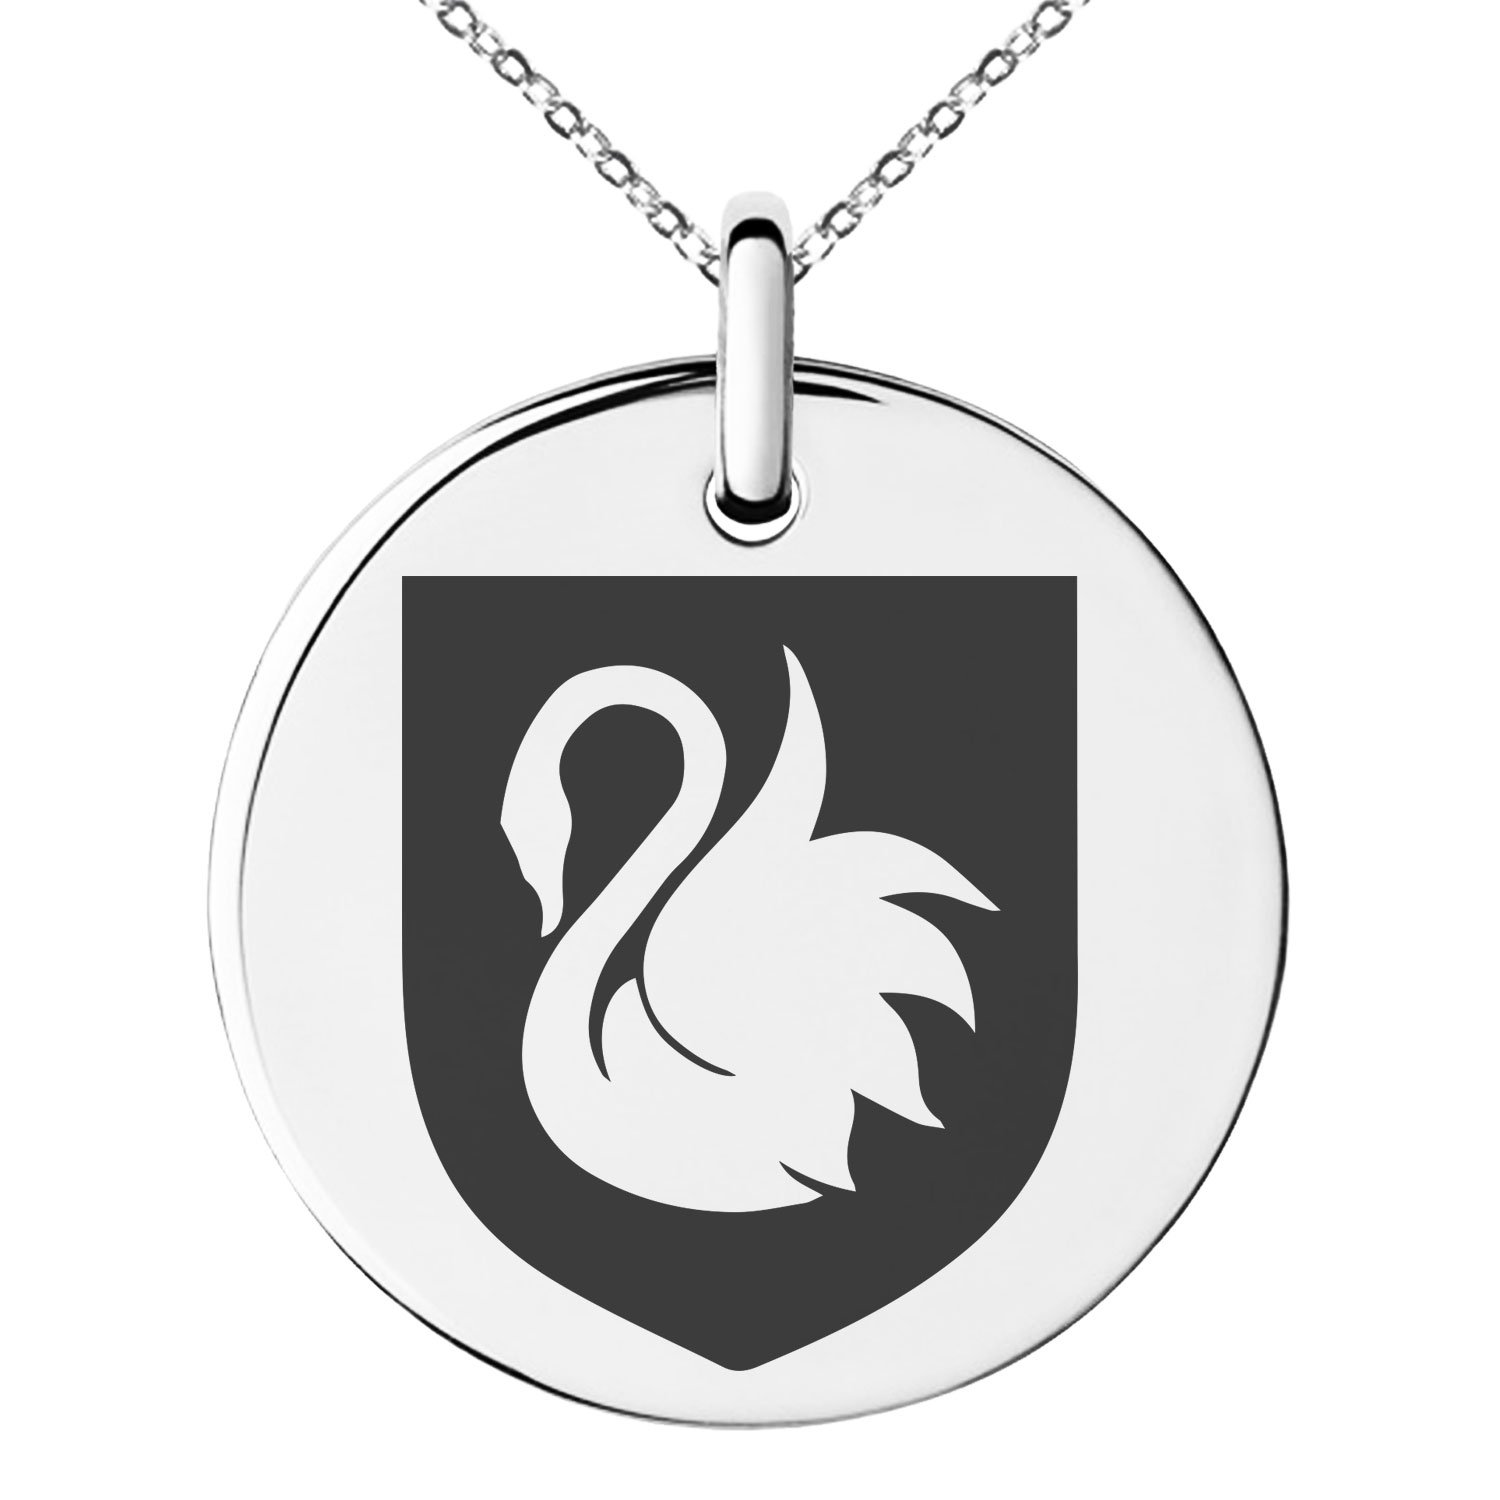 Tioneer Stainless Steel Swan Harmony Coat of Arms Shield Symbol Engraved Small Medallion Circle Charm Pendant Necklace